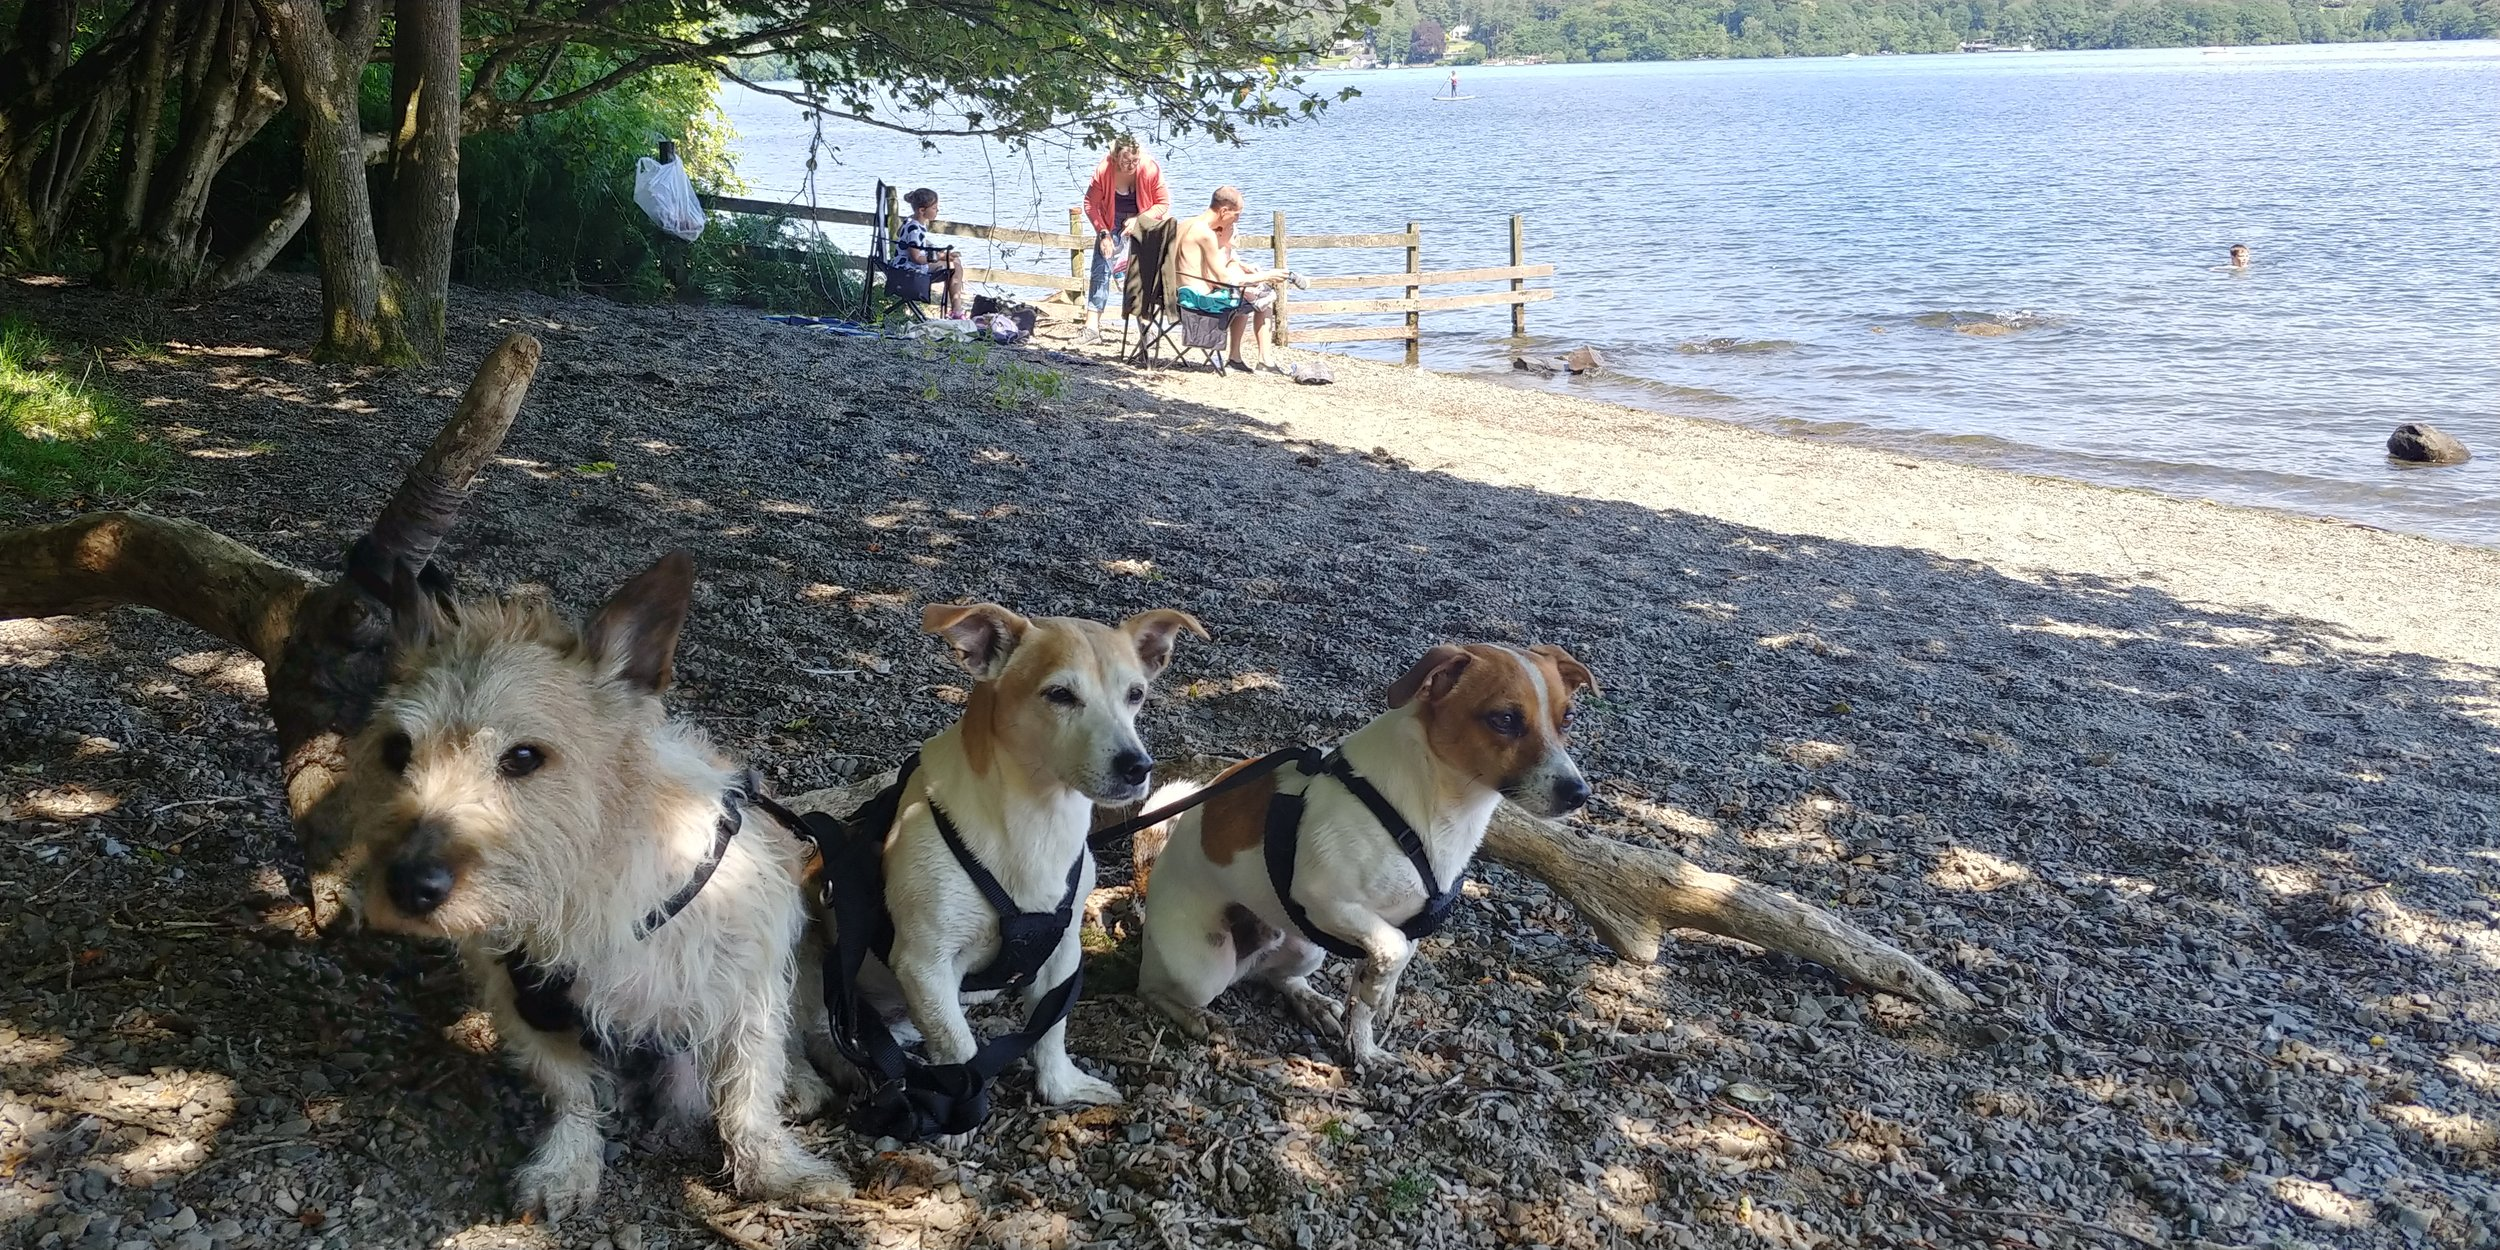 Beach boys (and girl).